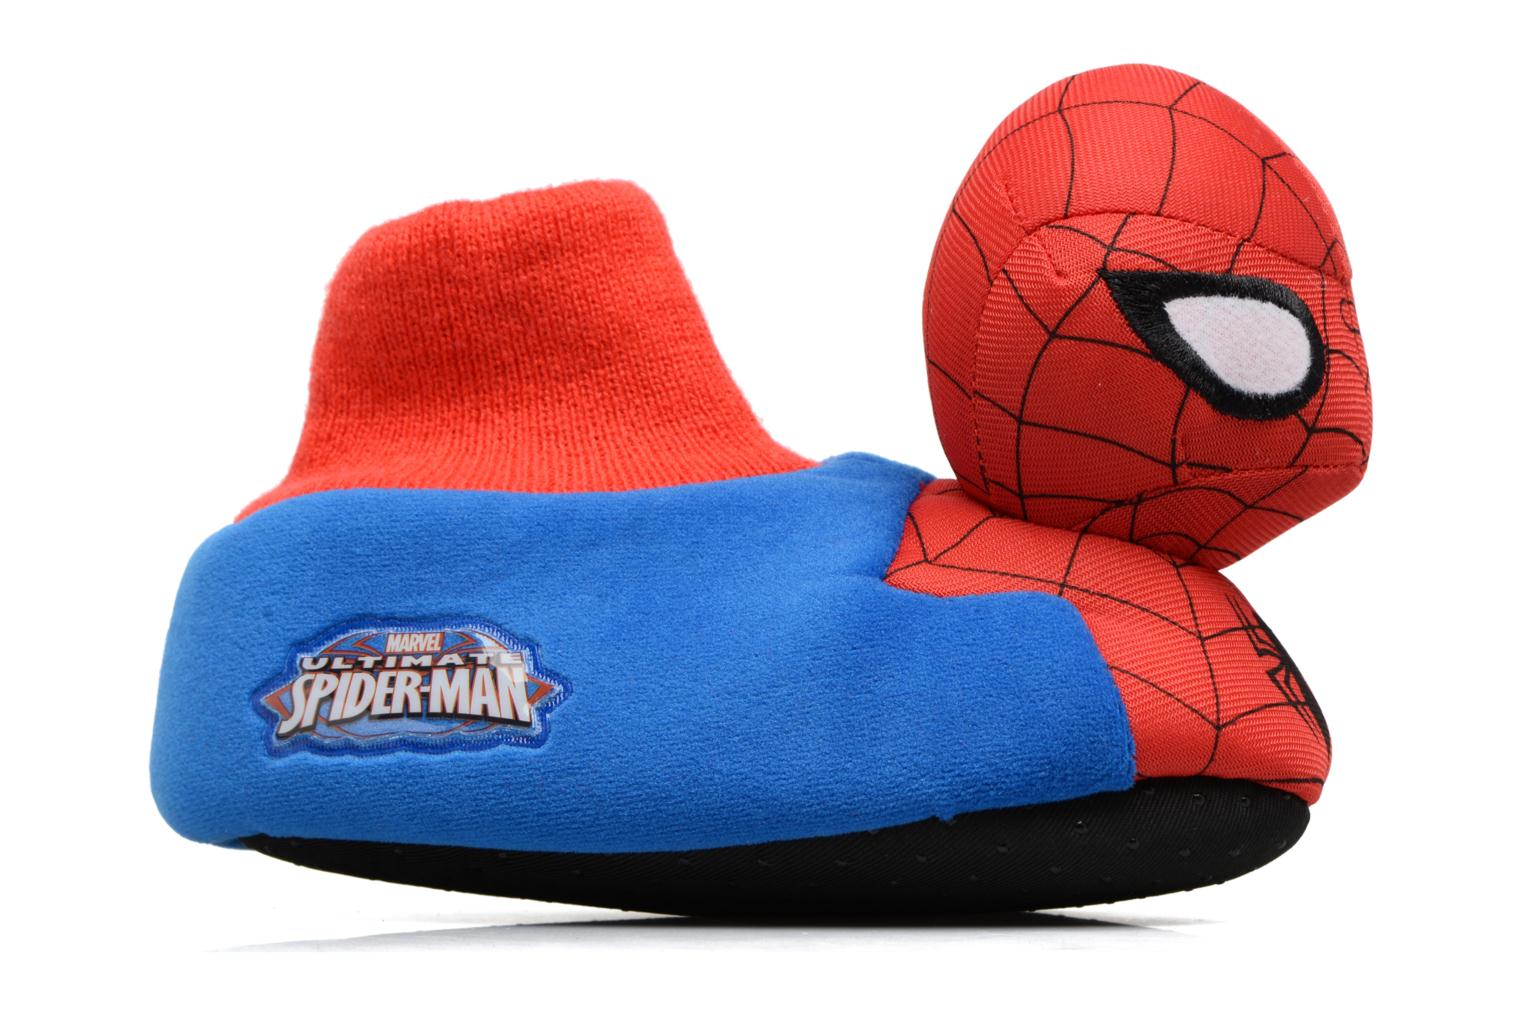 Slippers Spiderman S24967 Spiderman Blue back view